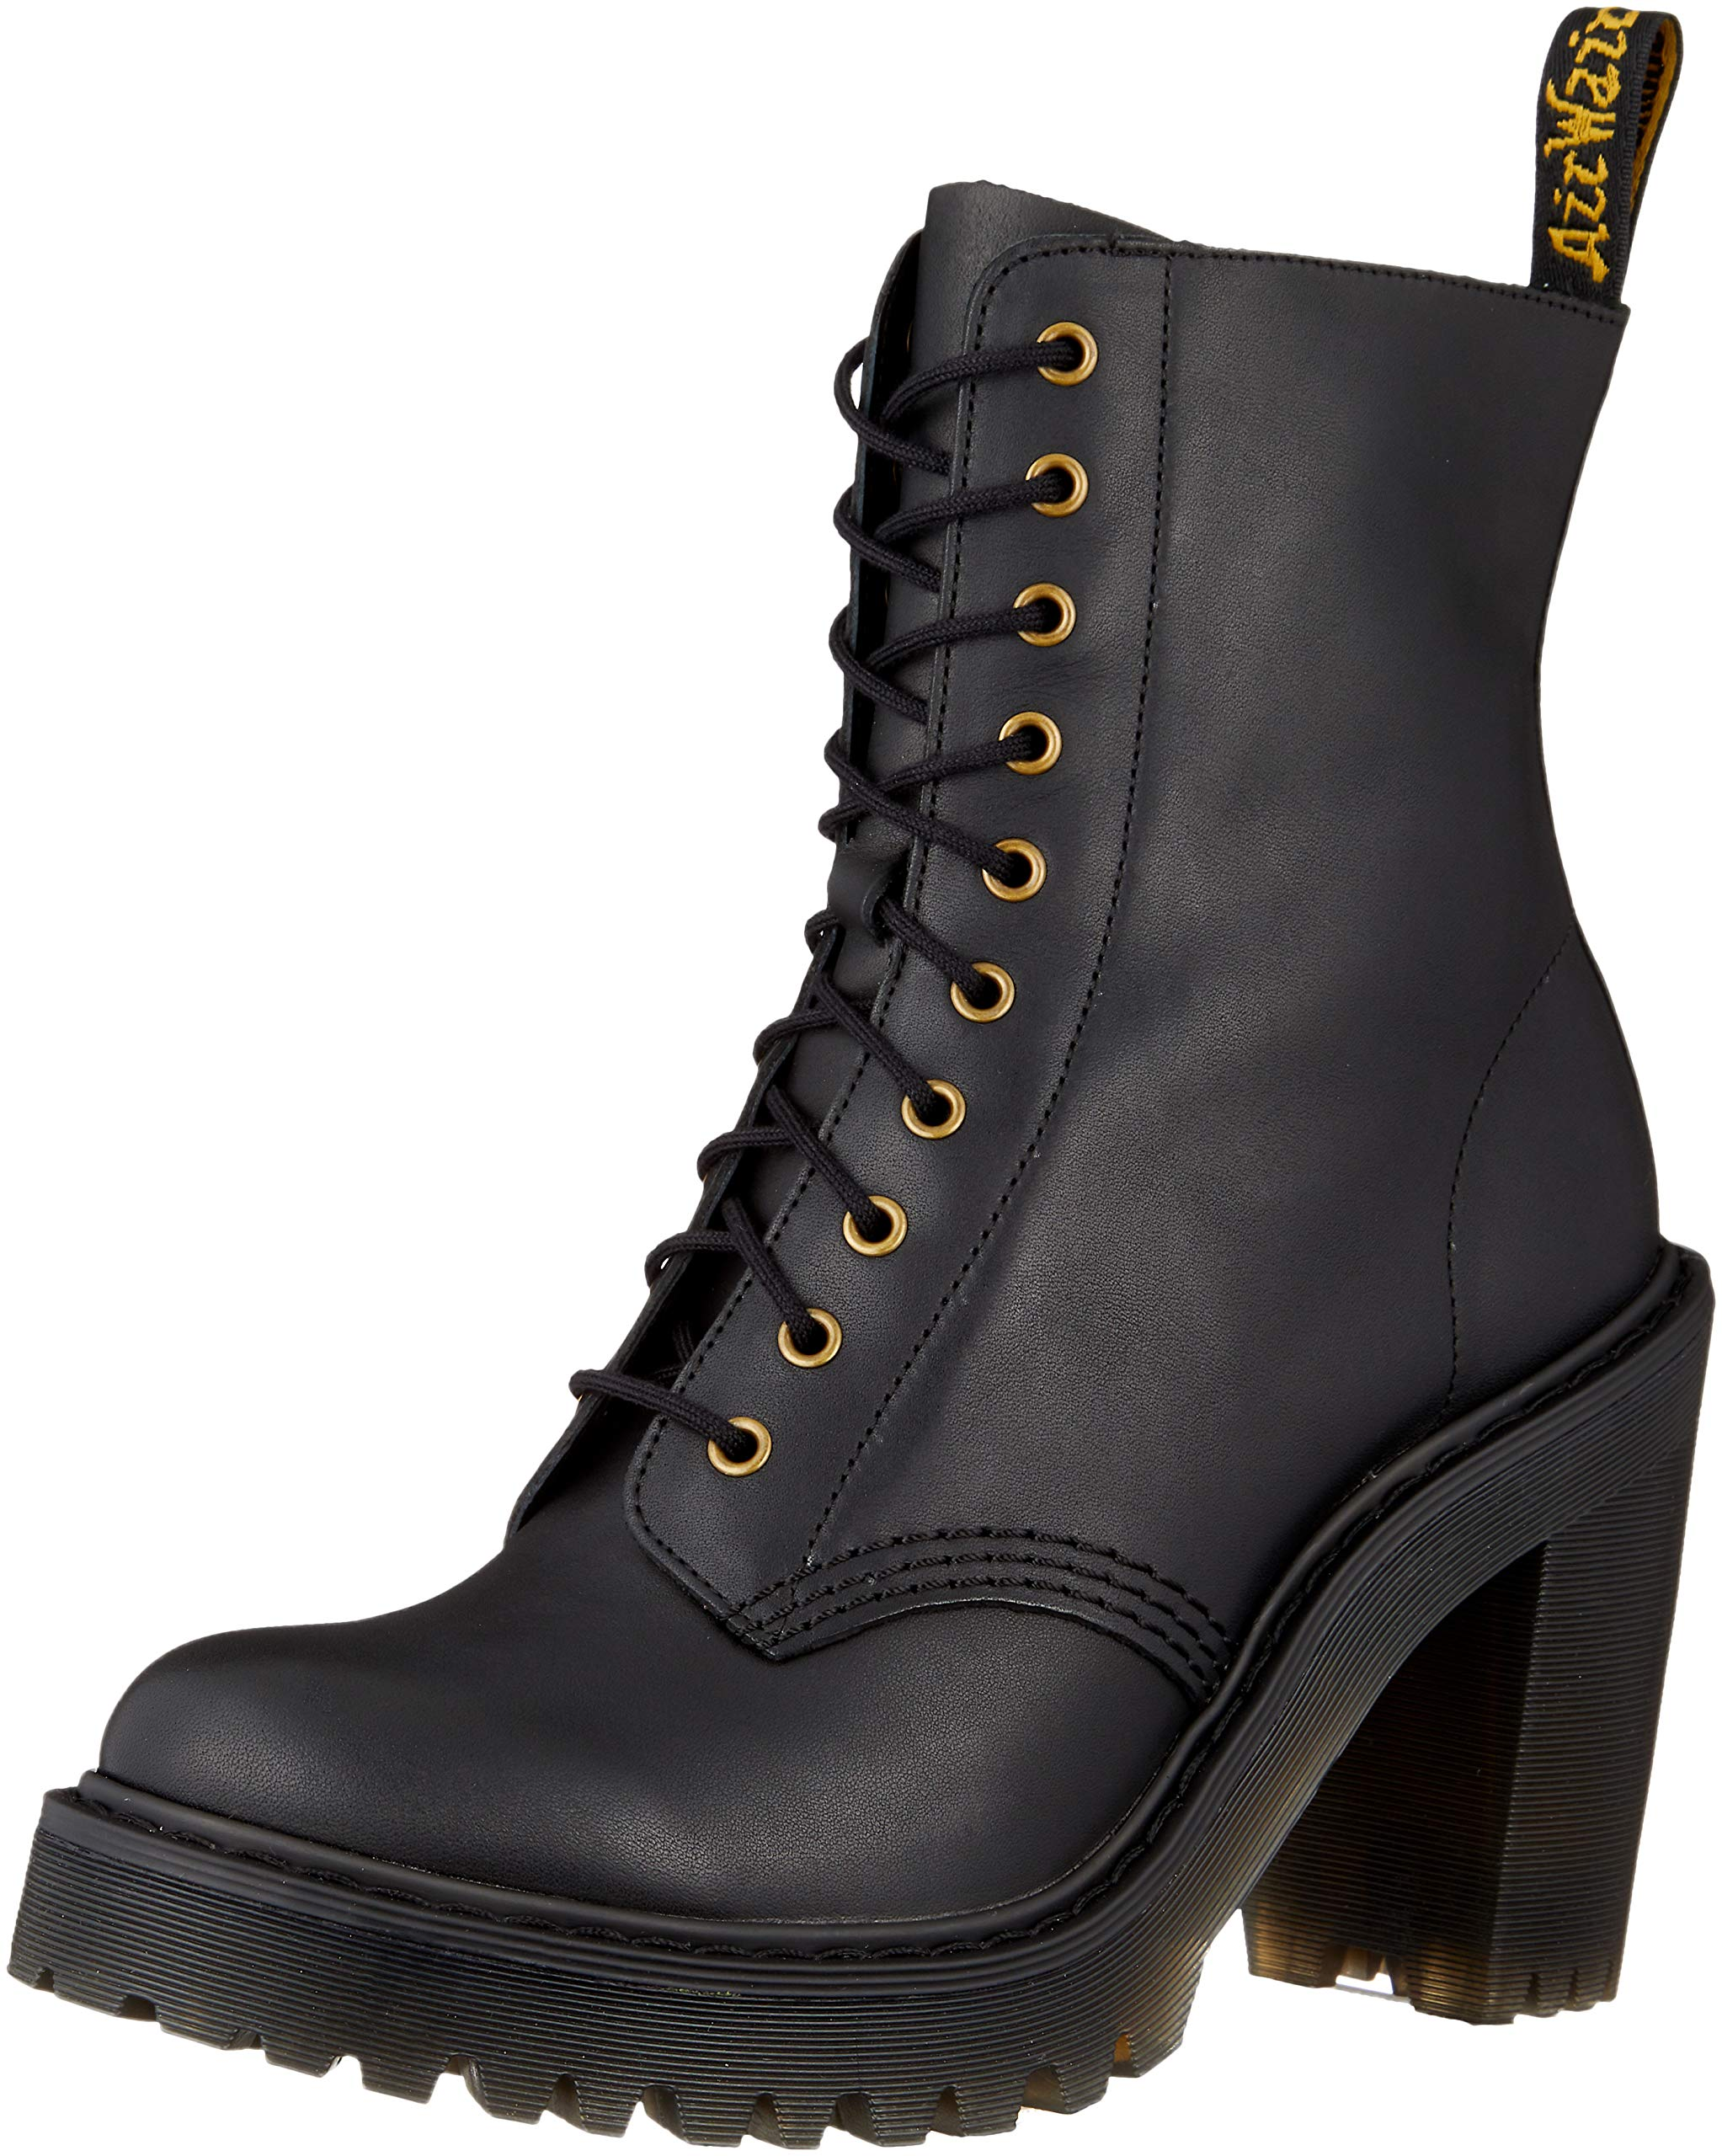 Dr. Martens Women's Kendra Fashion Boot, Black, 5 M UK (7 US) by Dr. Martens